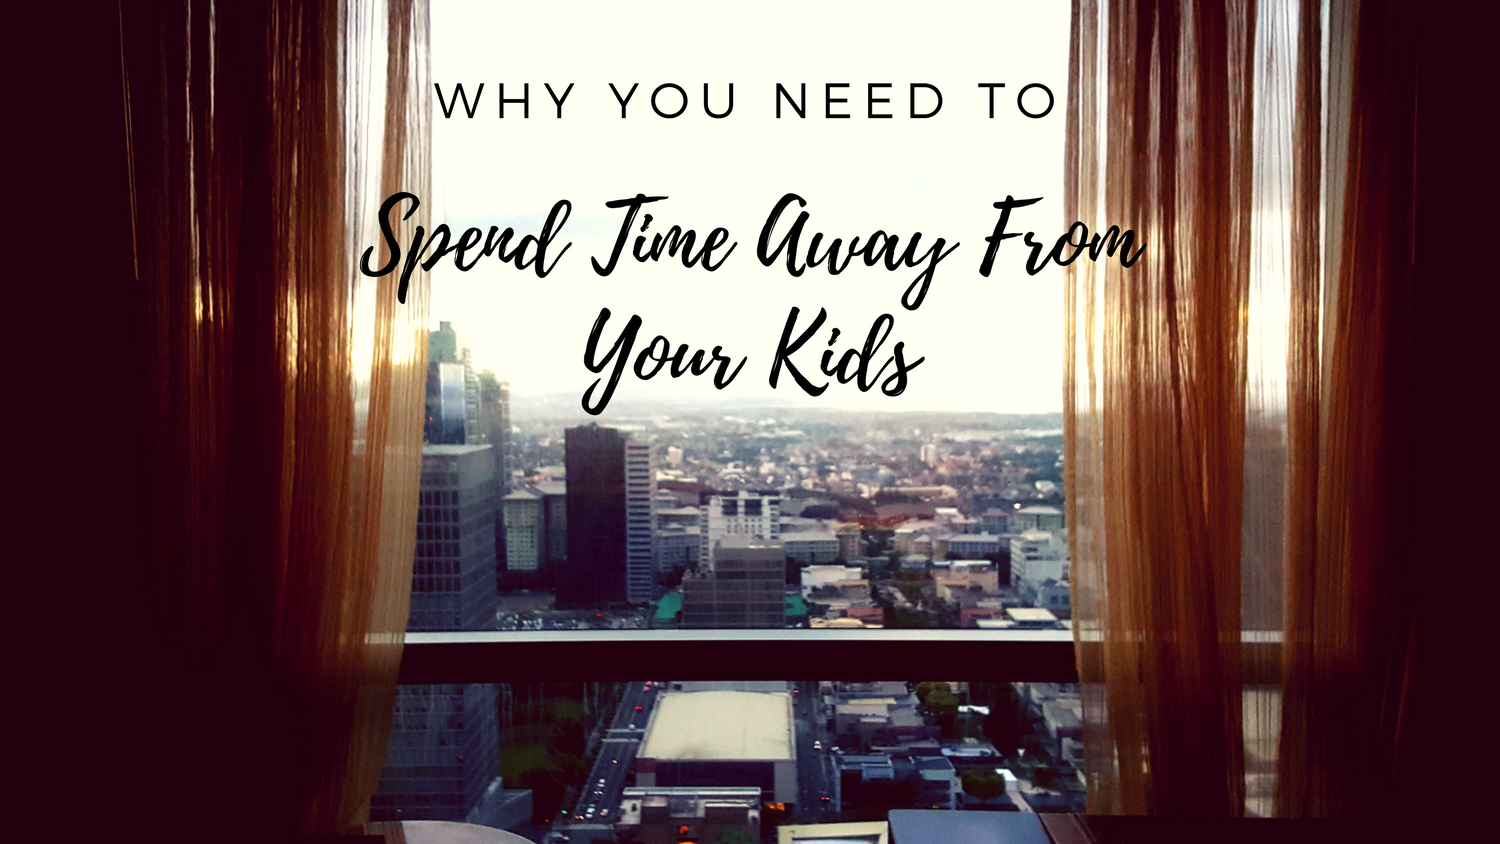 Spend Time Away From Your Kids | The Practical Beauty